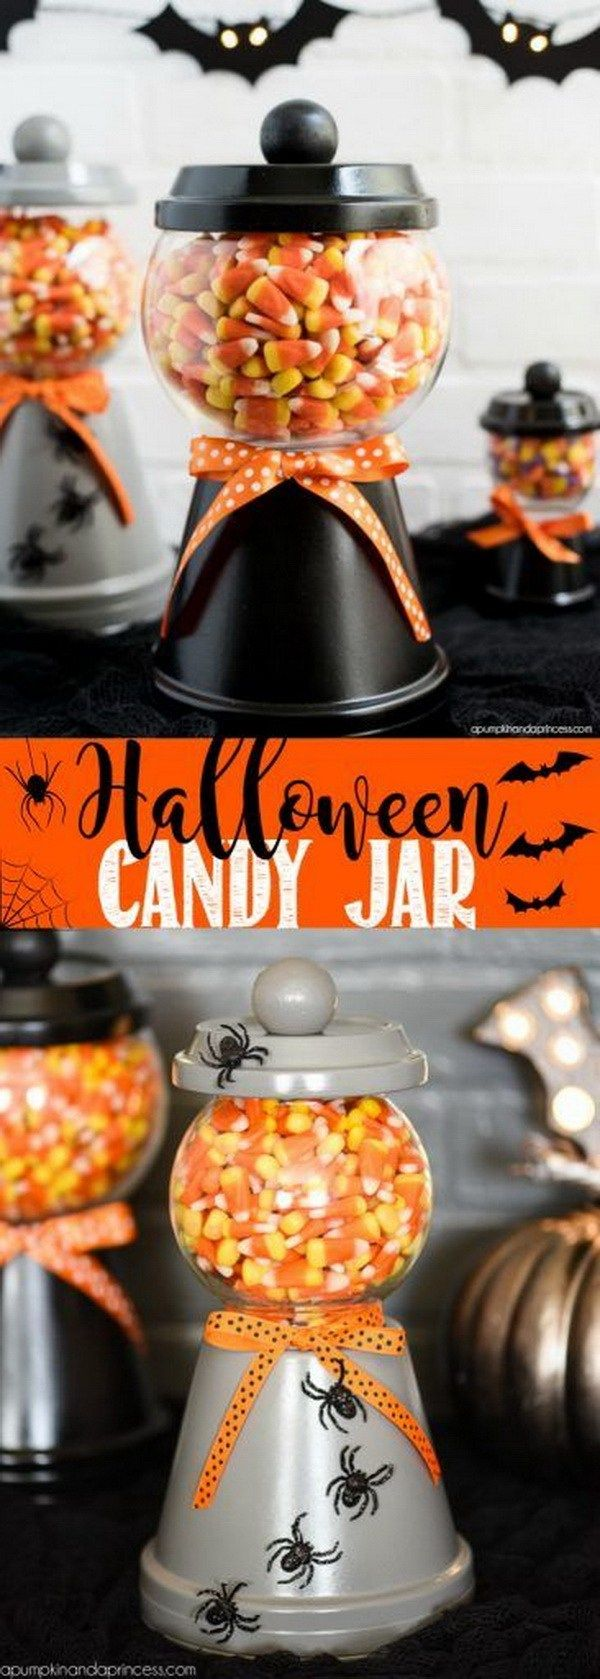 Halloween Candy Jar. Make a Halloween candy jar with a terra cotta pot, saucer, a glass bowl and wooden knob. Perfect for decorating and displaying your favorite Halloween treats!